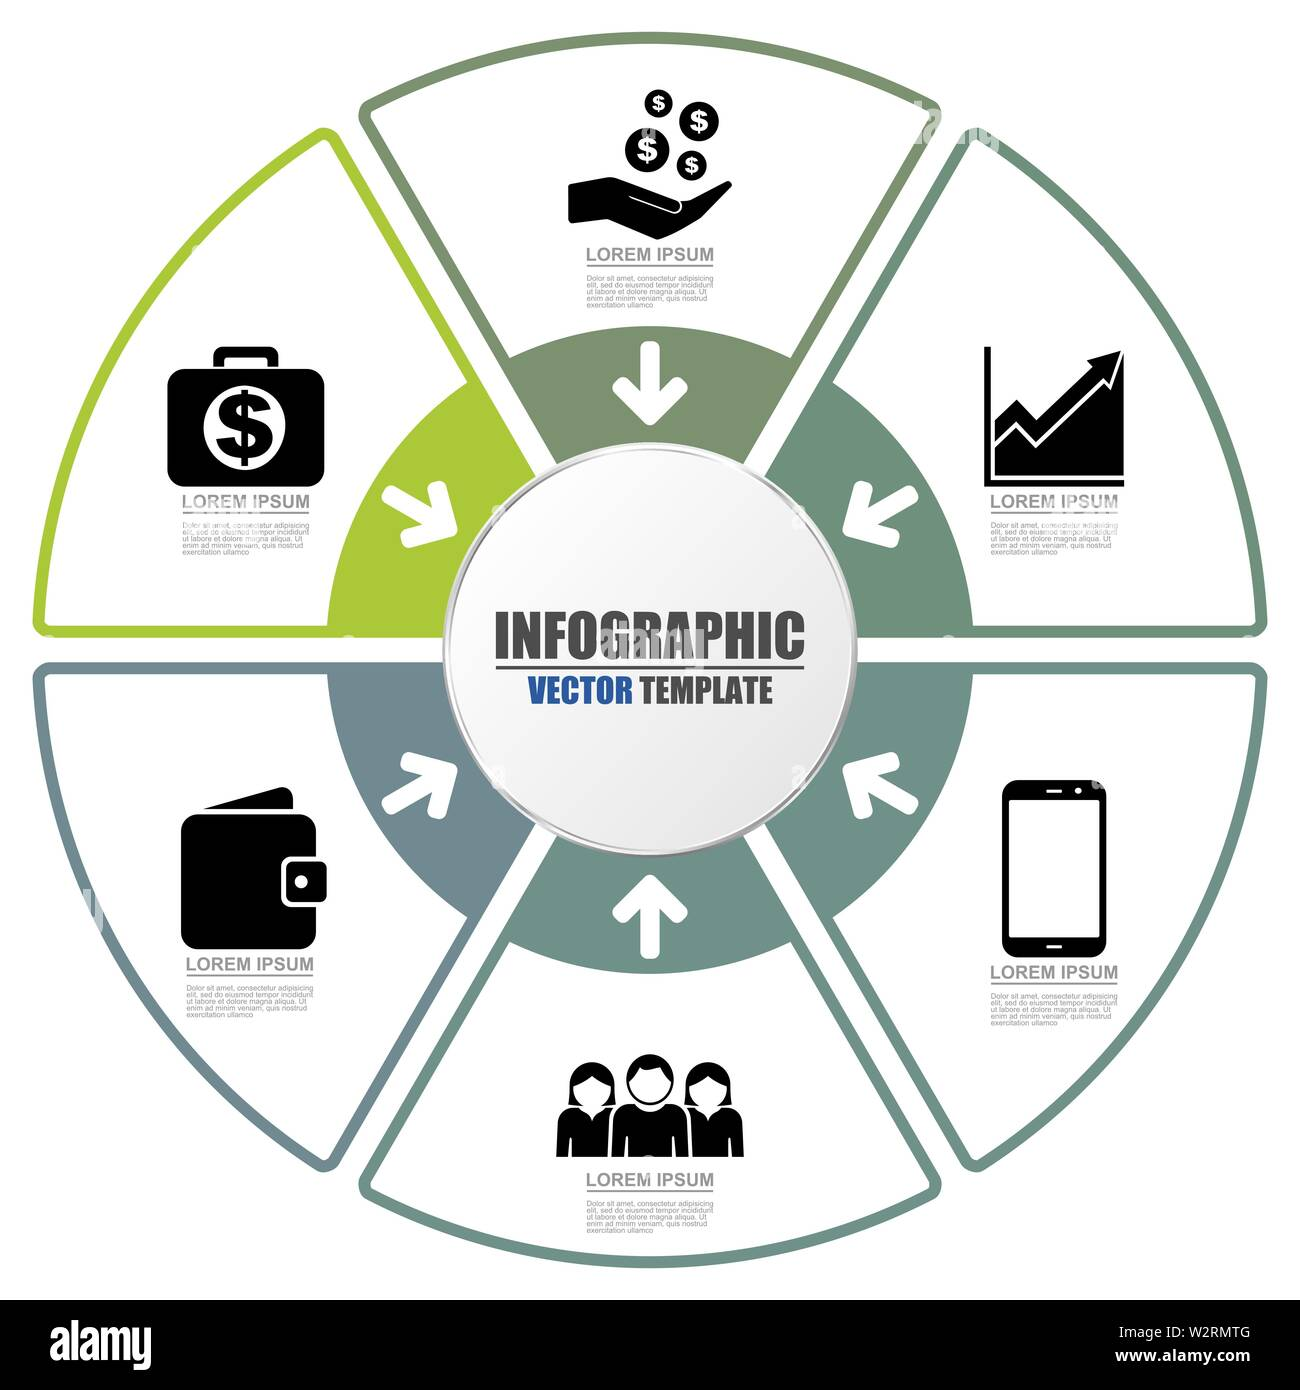 Infographic vector template for presentation, chart, diagram business concept with 6 options - Stock Image